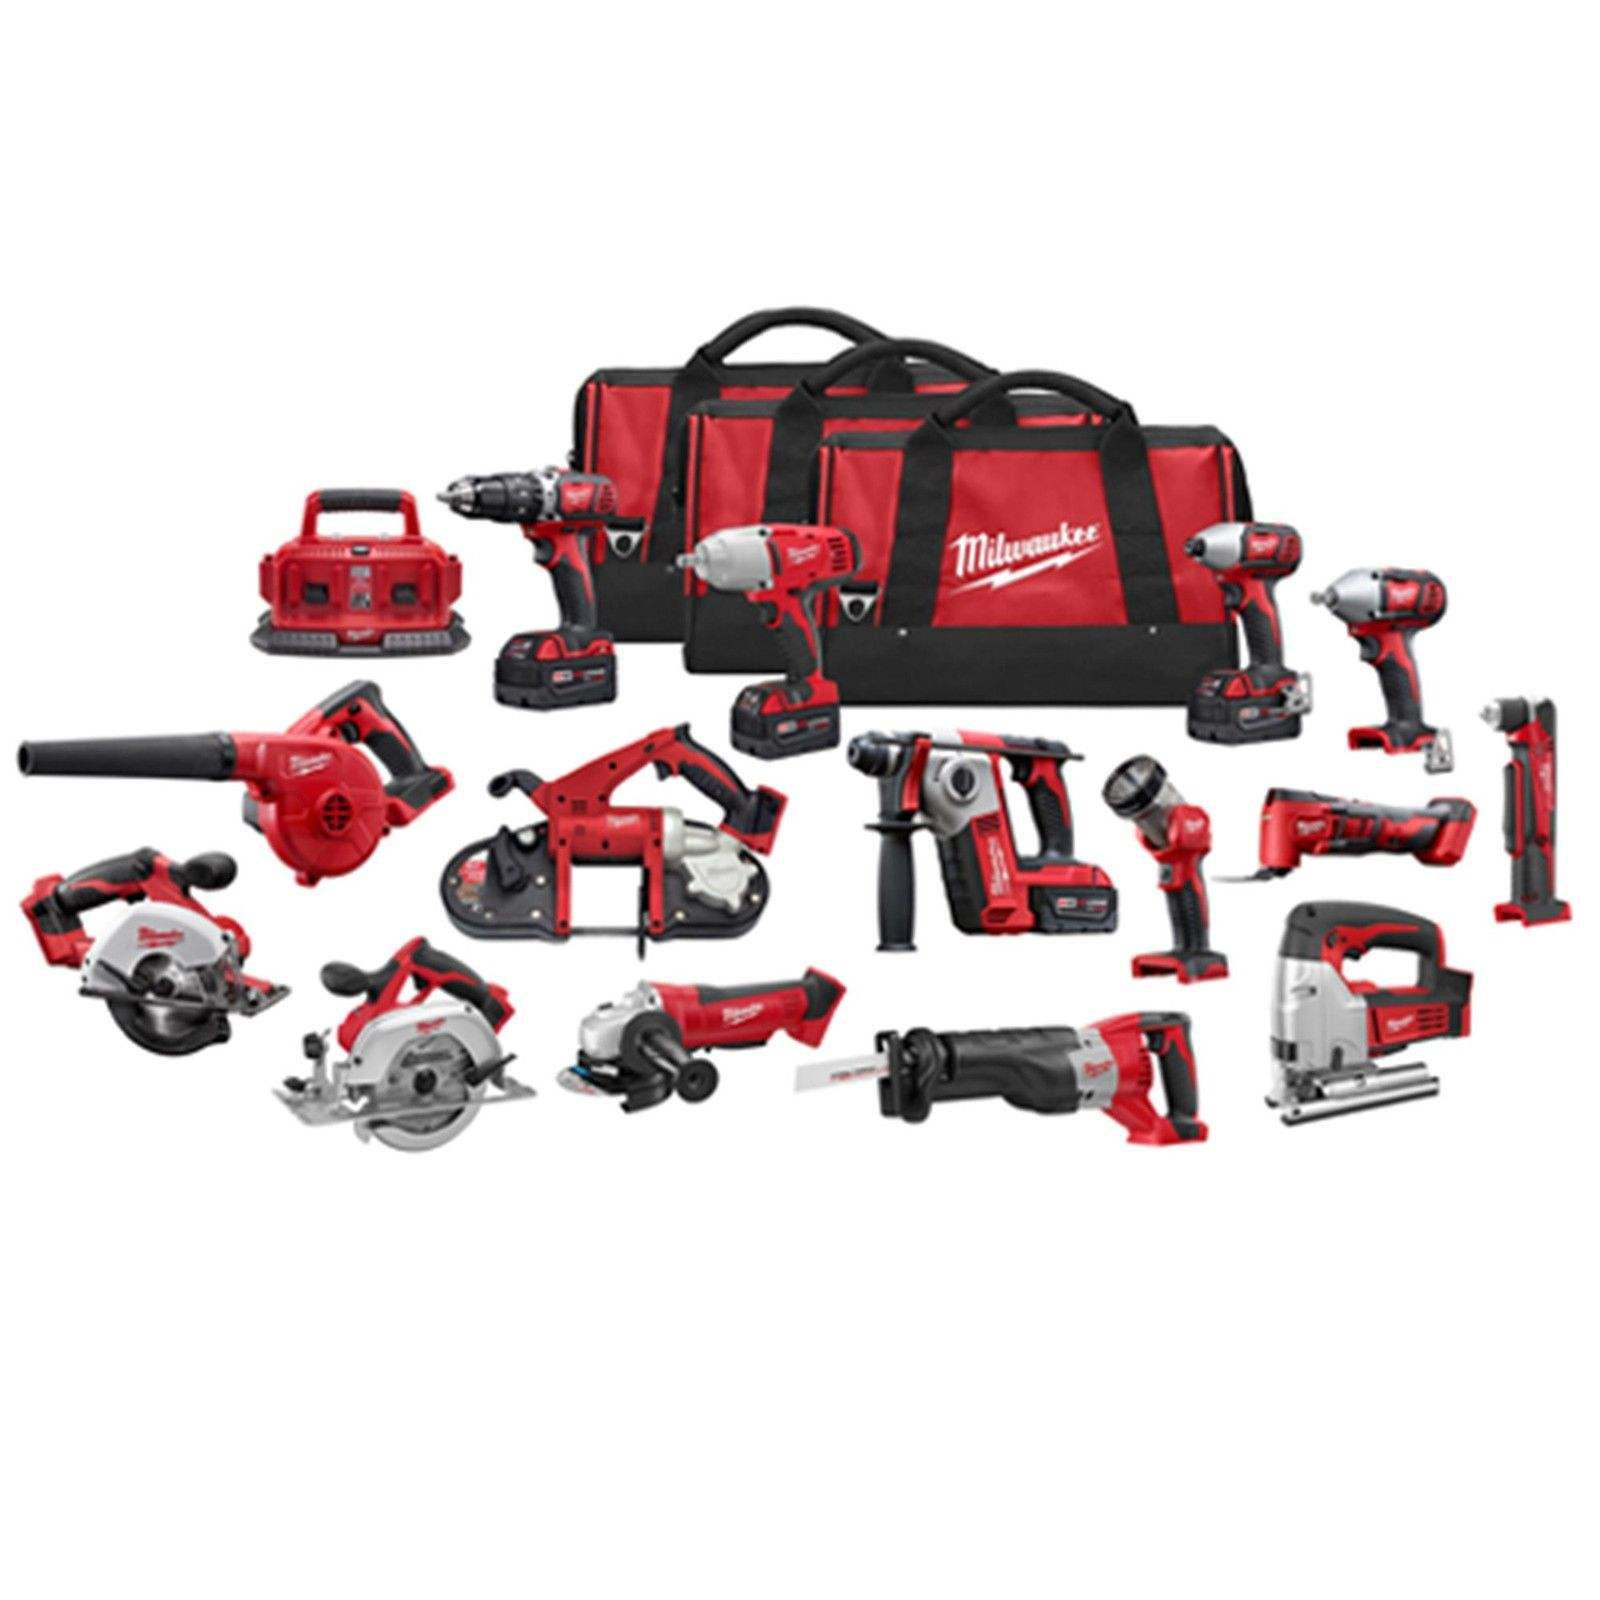 NEWLY ARRIVED MilWauKees 2695-15 M18 18V Cordless Lithium-Ion 15-Tool Combo Kit